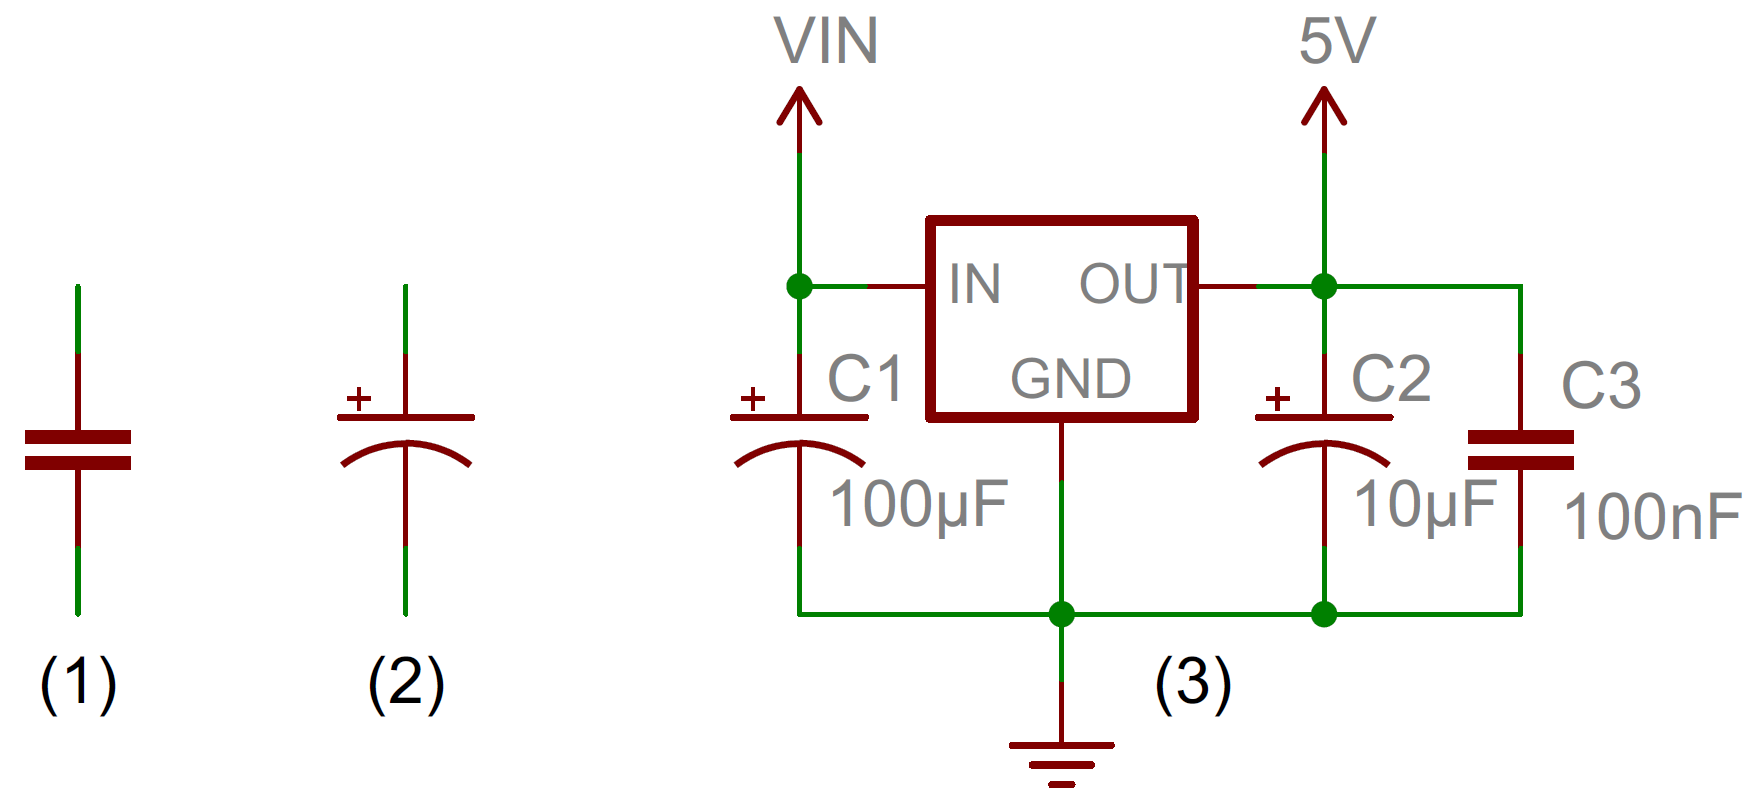 Capacitors Step 3 Learn Electronics By Building Circuits From Circuit Diagrams Capacitor Symbols